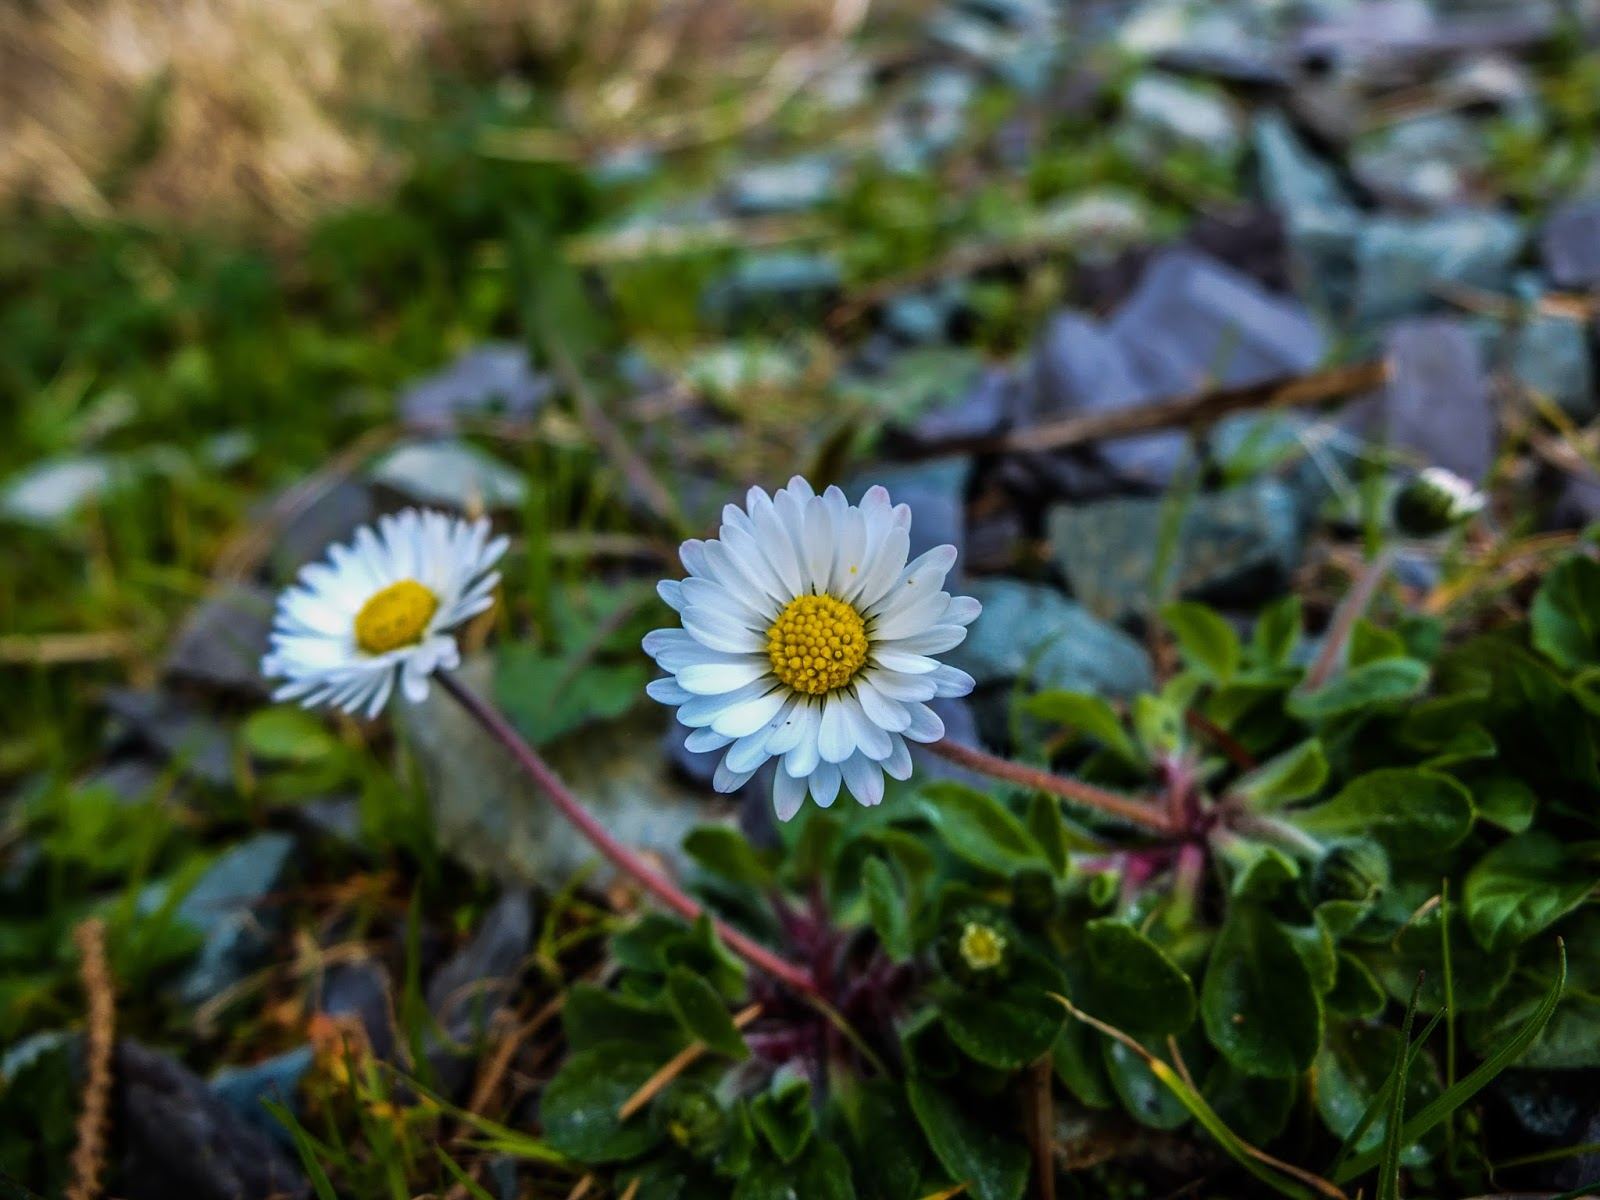 Daisies in between rocks and grass.